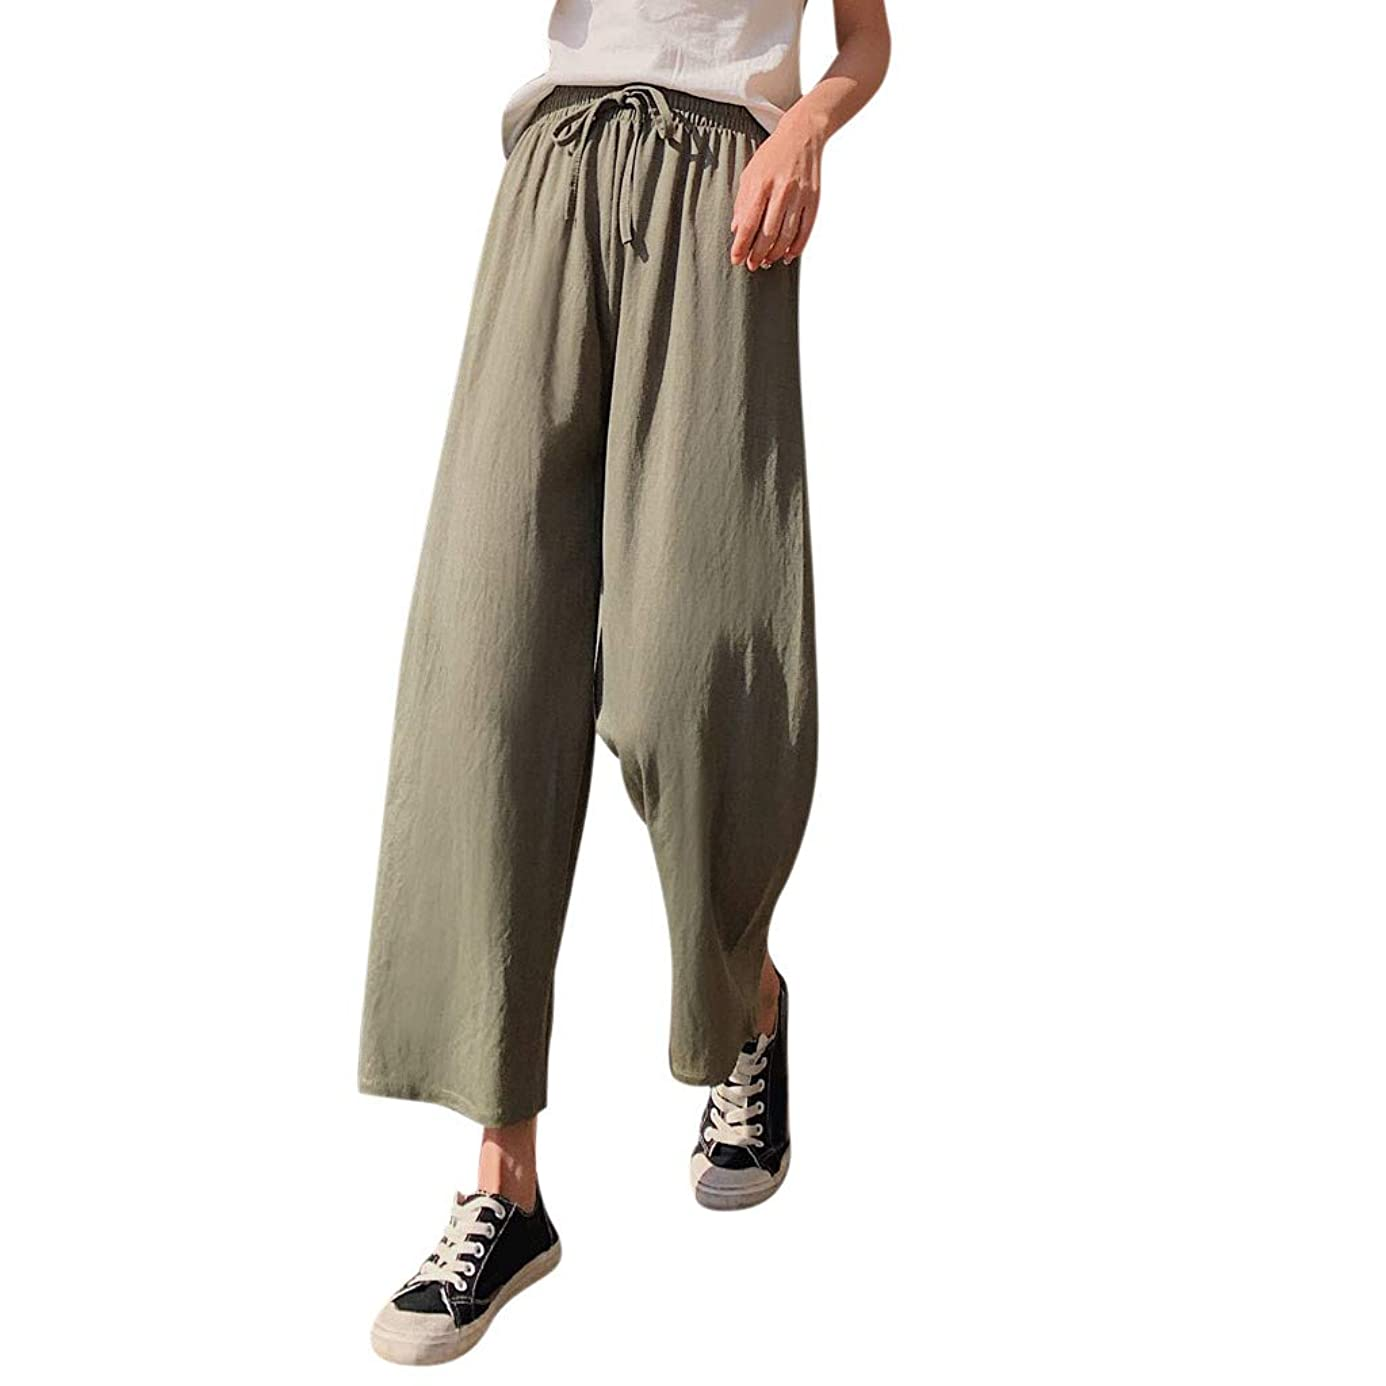 hositor Pants for Women, Fashion Ladies Cotton Linen Blend Long Pants Casual Wide Leg Beach Loose Trousers